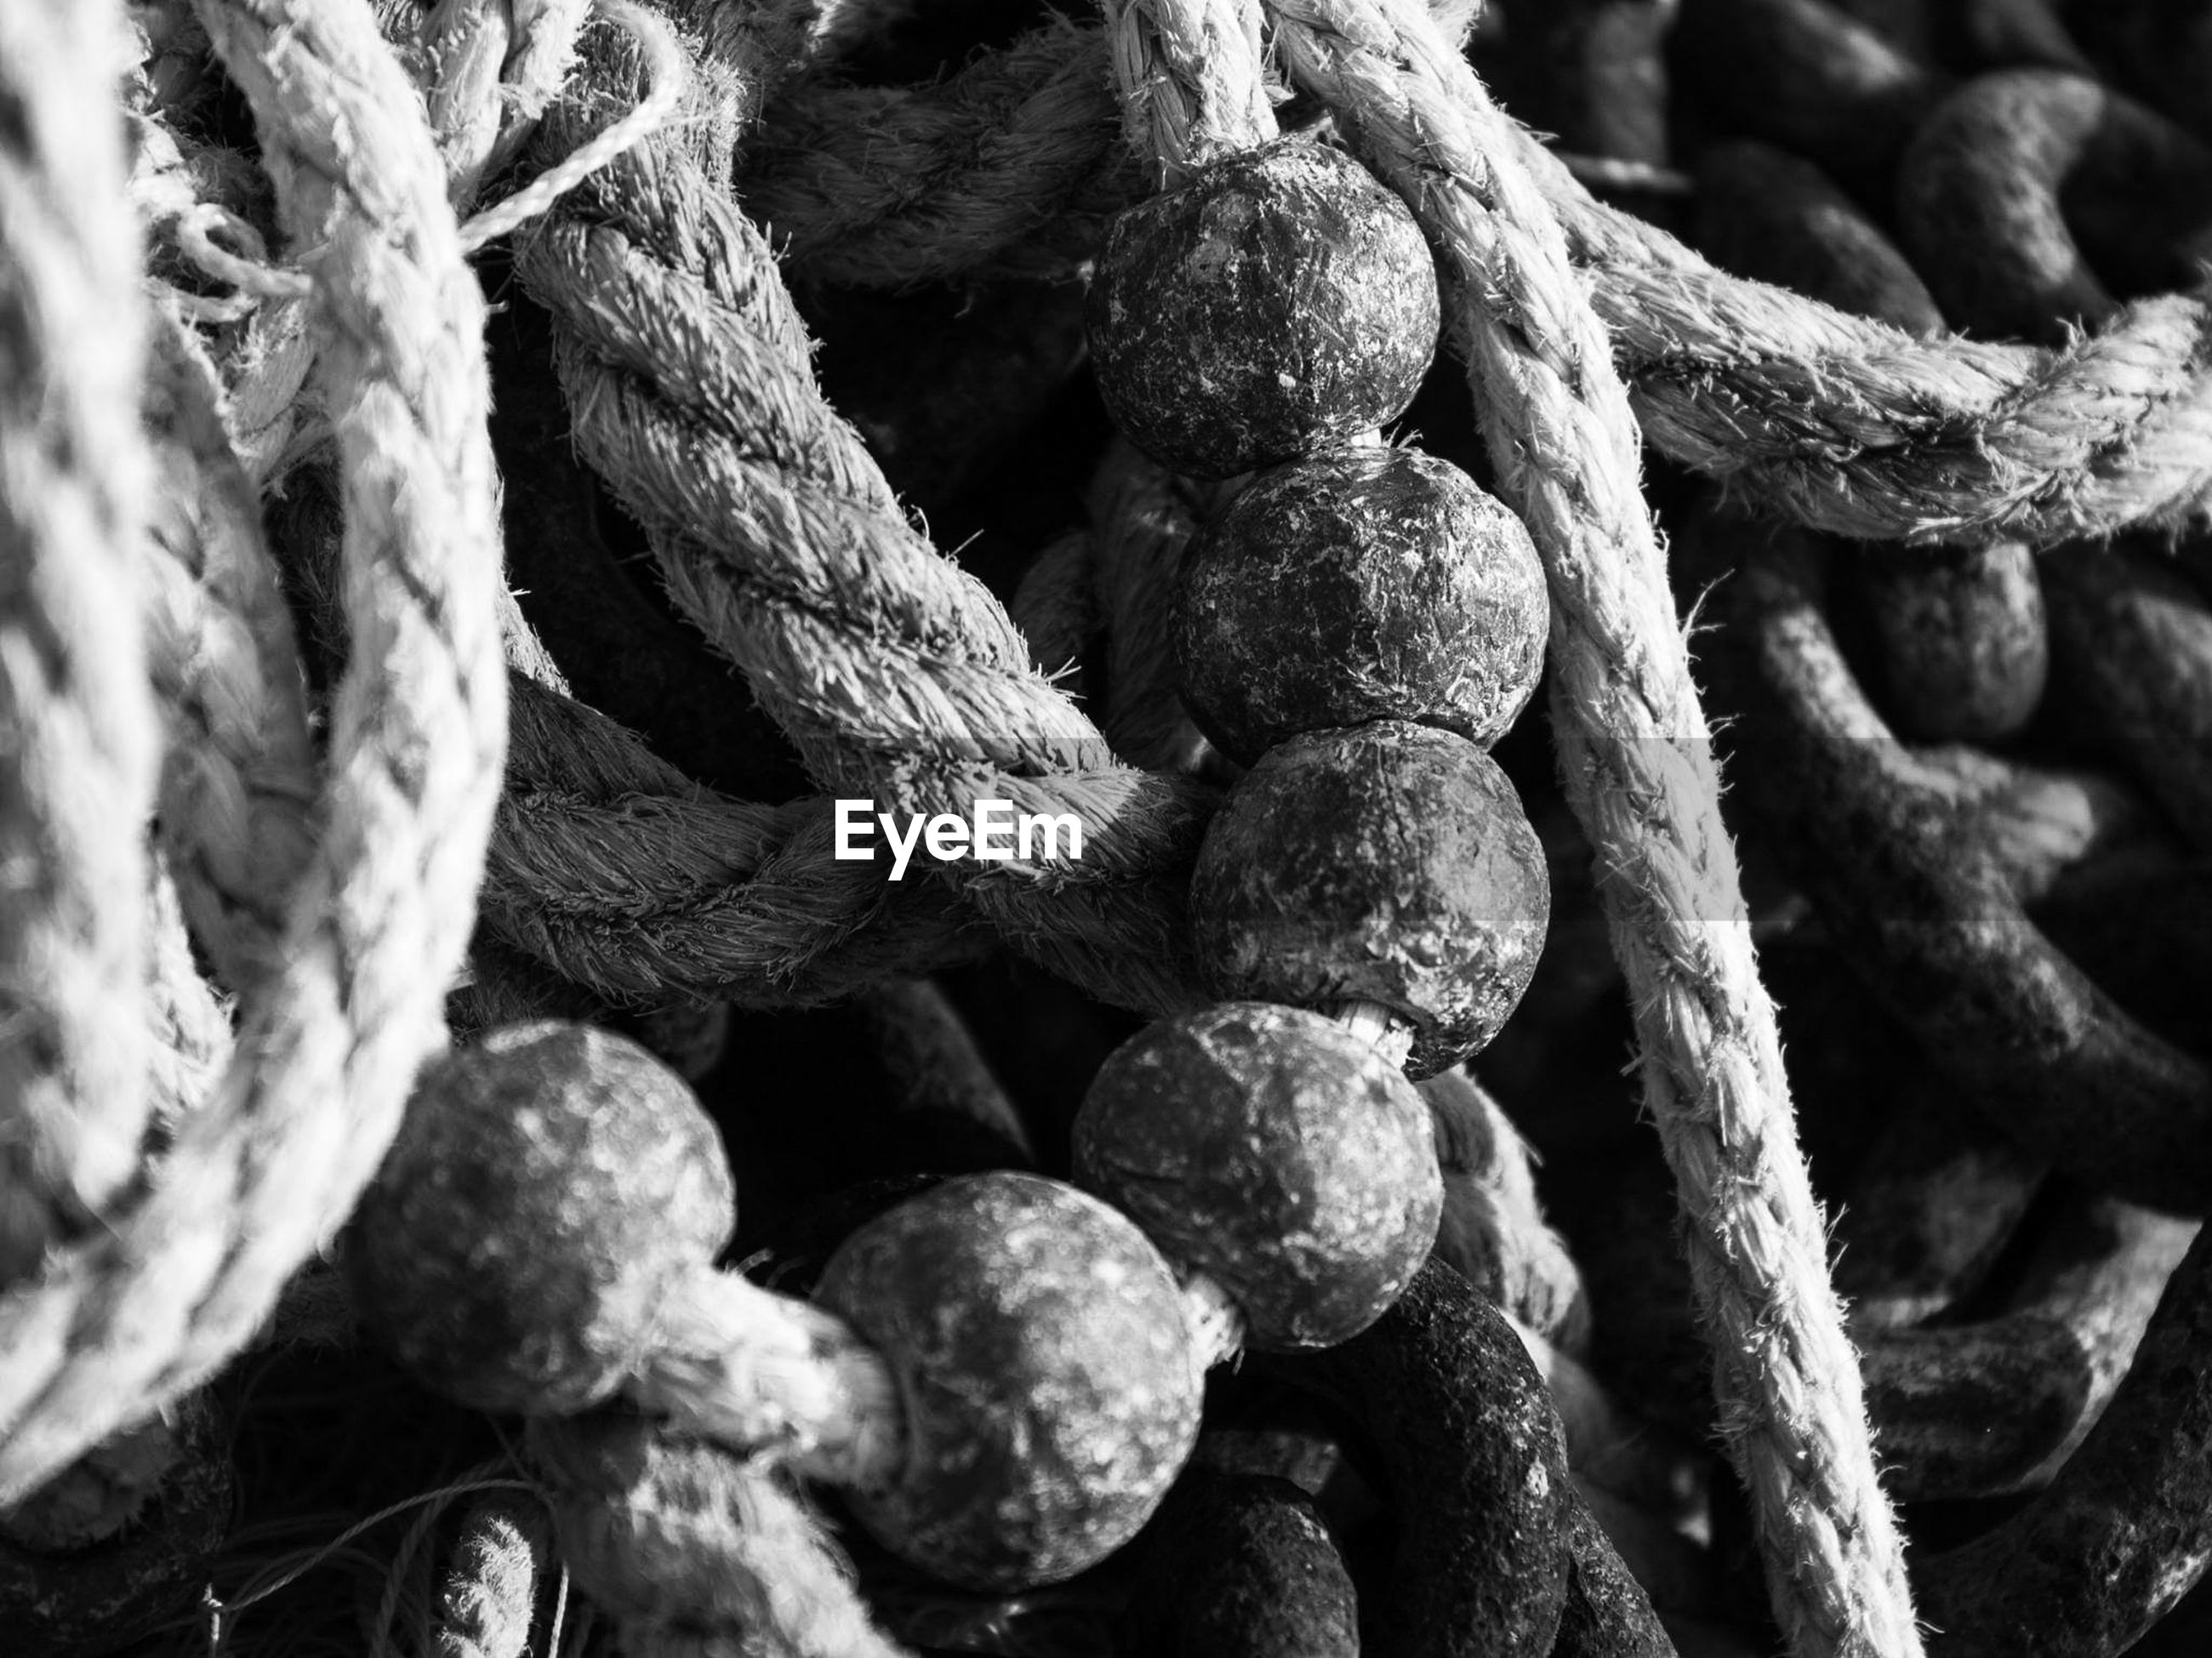 FULL FRAME SHOT OF ROPE TIED UP OF METAL